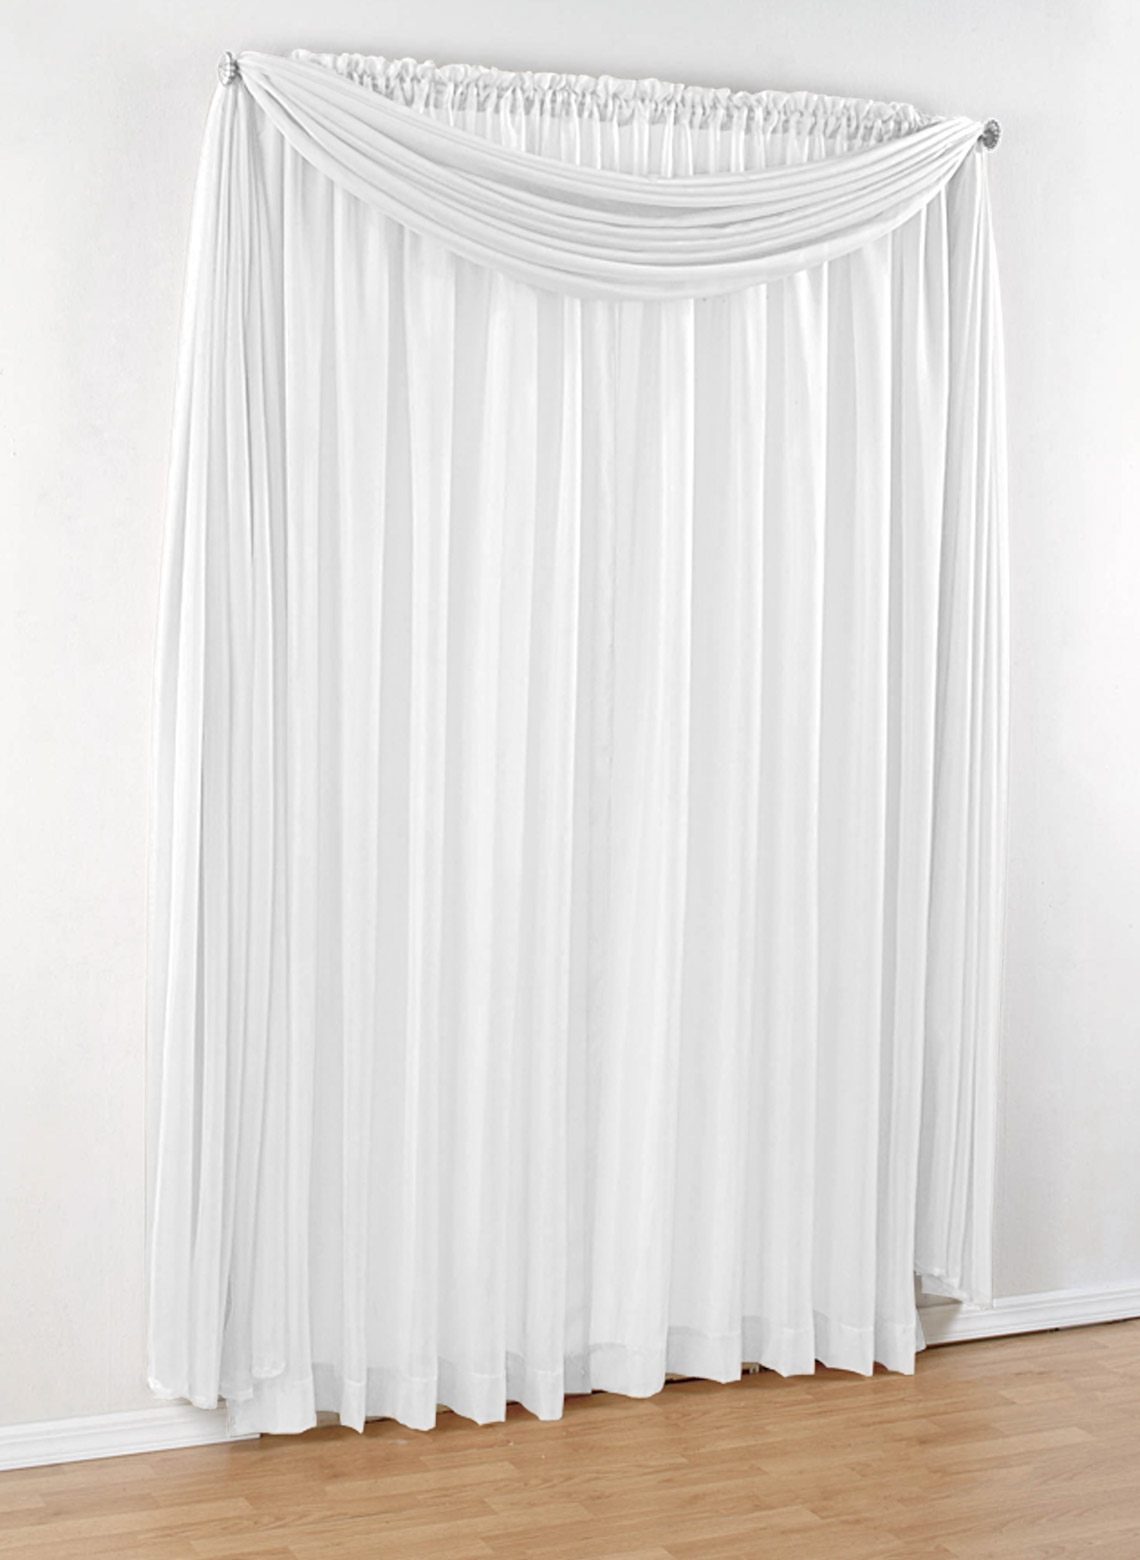 Sheer Curtains Carolwrightgifts With Regard To Curtain Sheers (View 6 of 25)